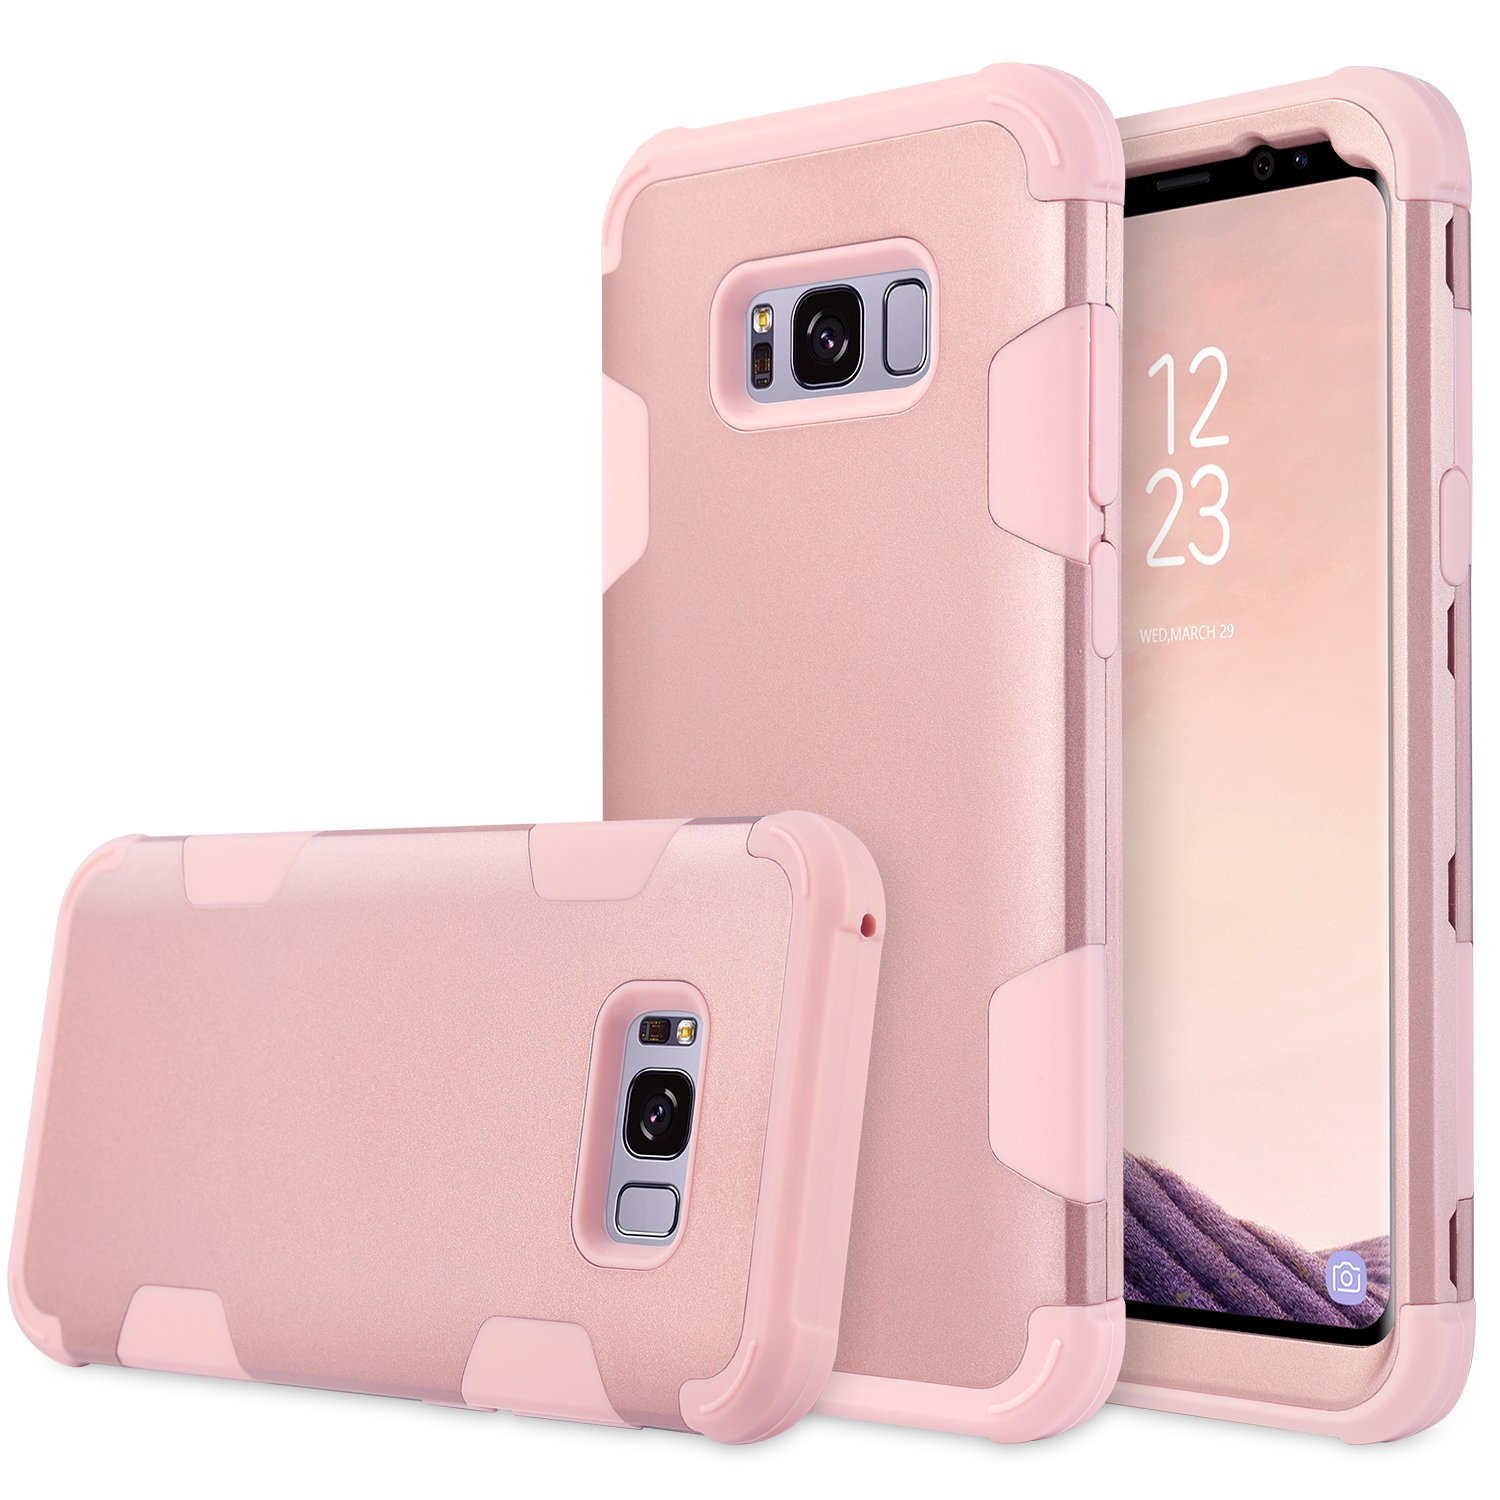 Galaxy S8 Plus Case, UrbanDrama 3 in 1 Drop-Protection Hard PC & Soft Silicone Combo Defender Heavy Duty Rugged Shockproof Bumper Full-Body Protective Case for Samsung Galaxy S8+ 6.2